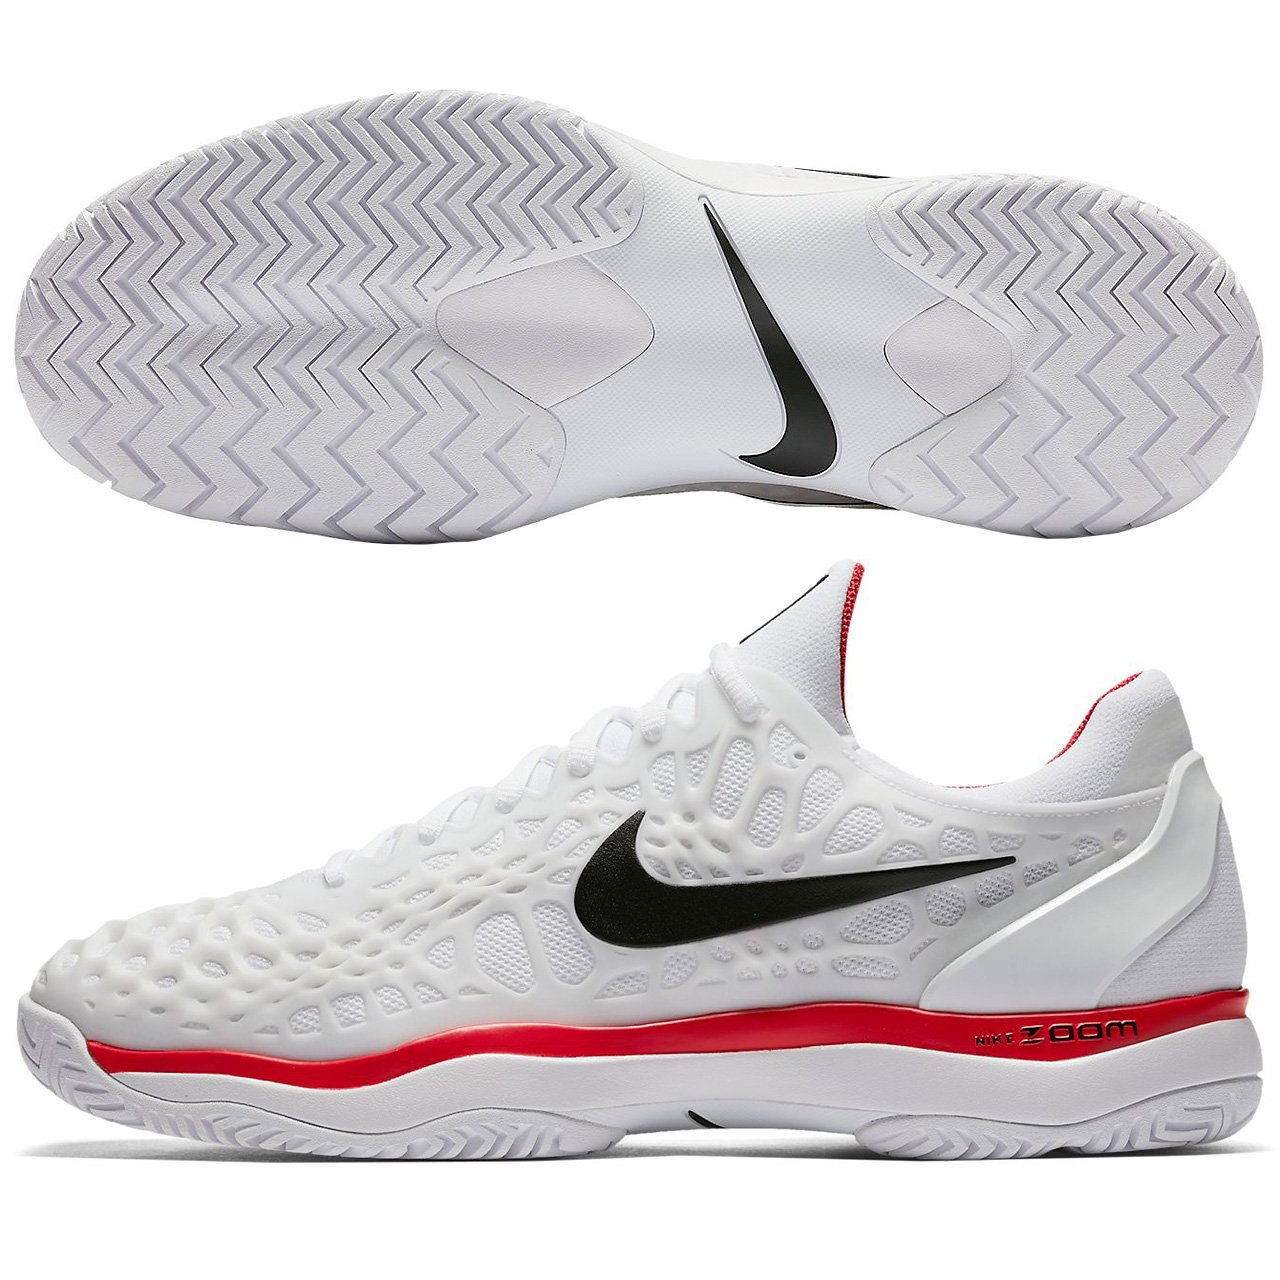 Amazon.com | NIKE Mens Zoom Cage 3 Tennis Shoe (White/Black/Red, 8) | Athletic